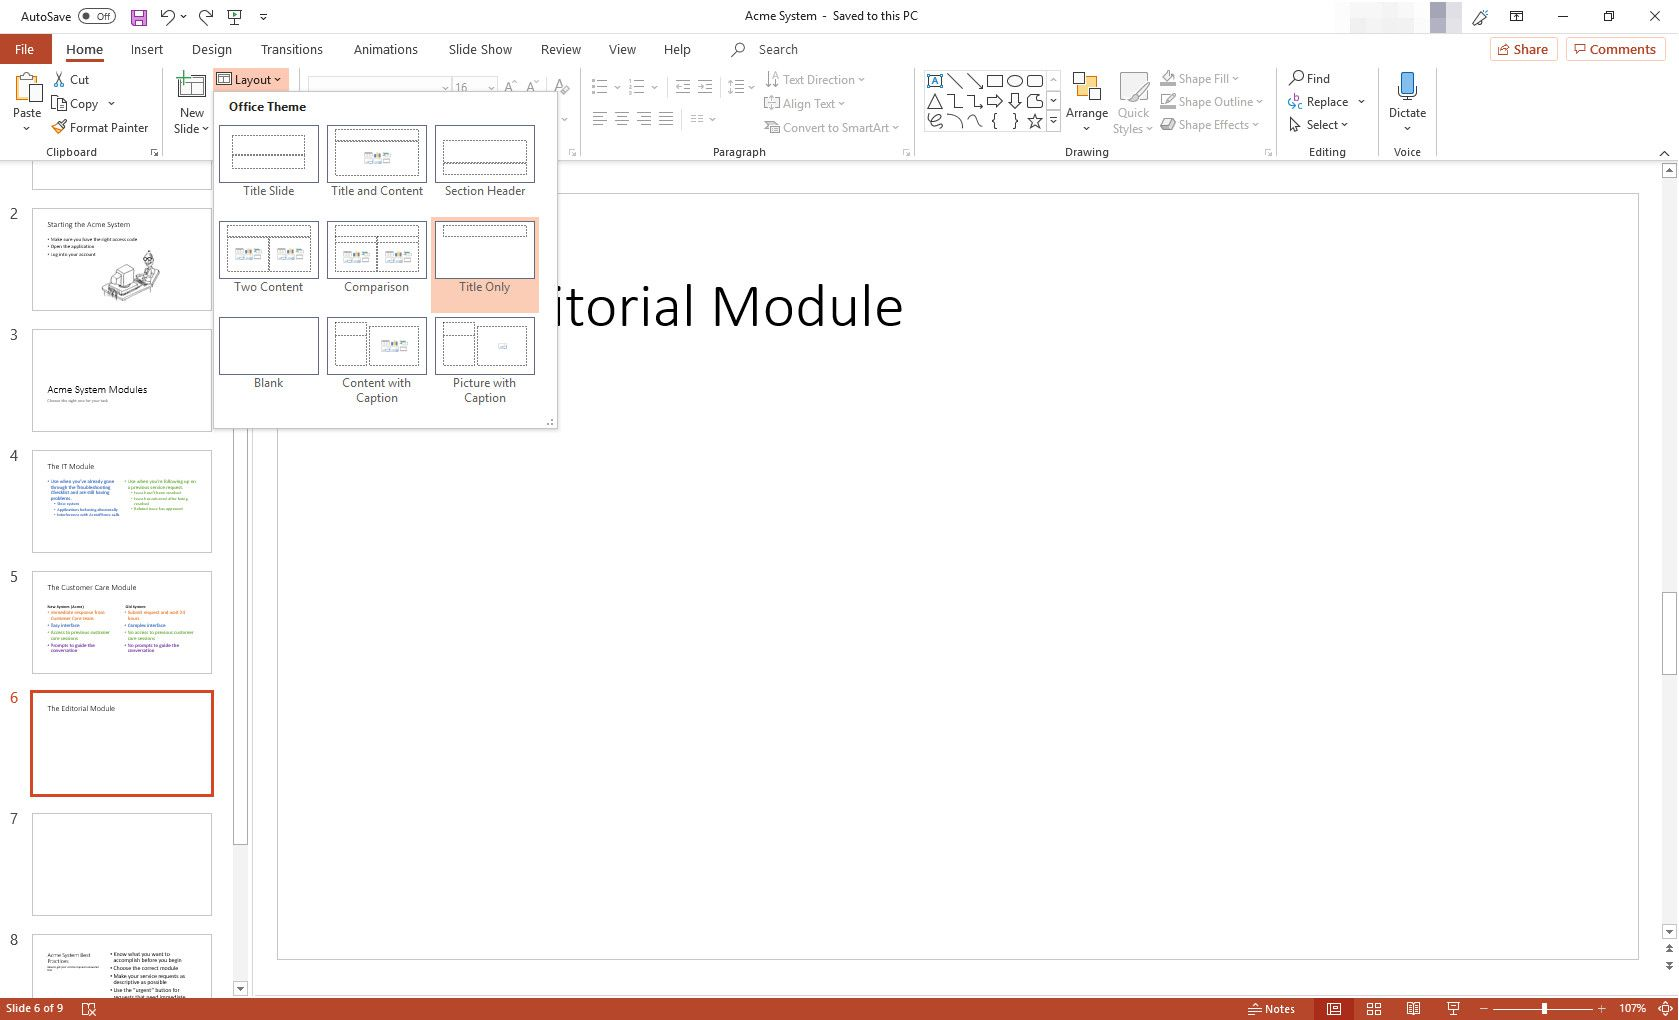 MS PowerPoint presentation with layout options displayed